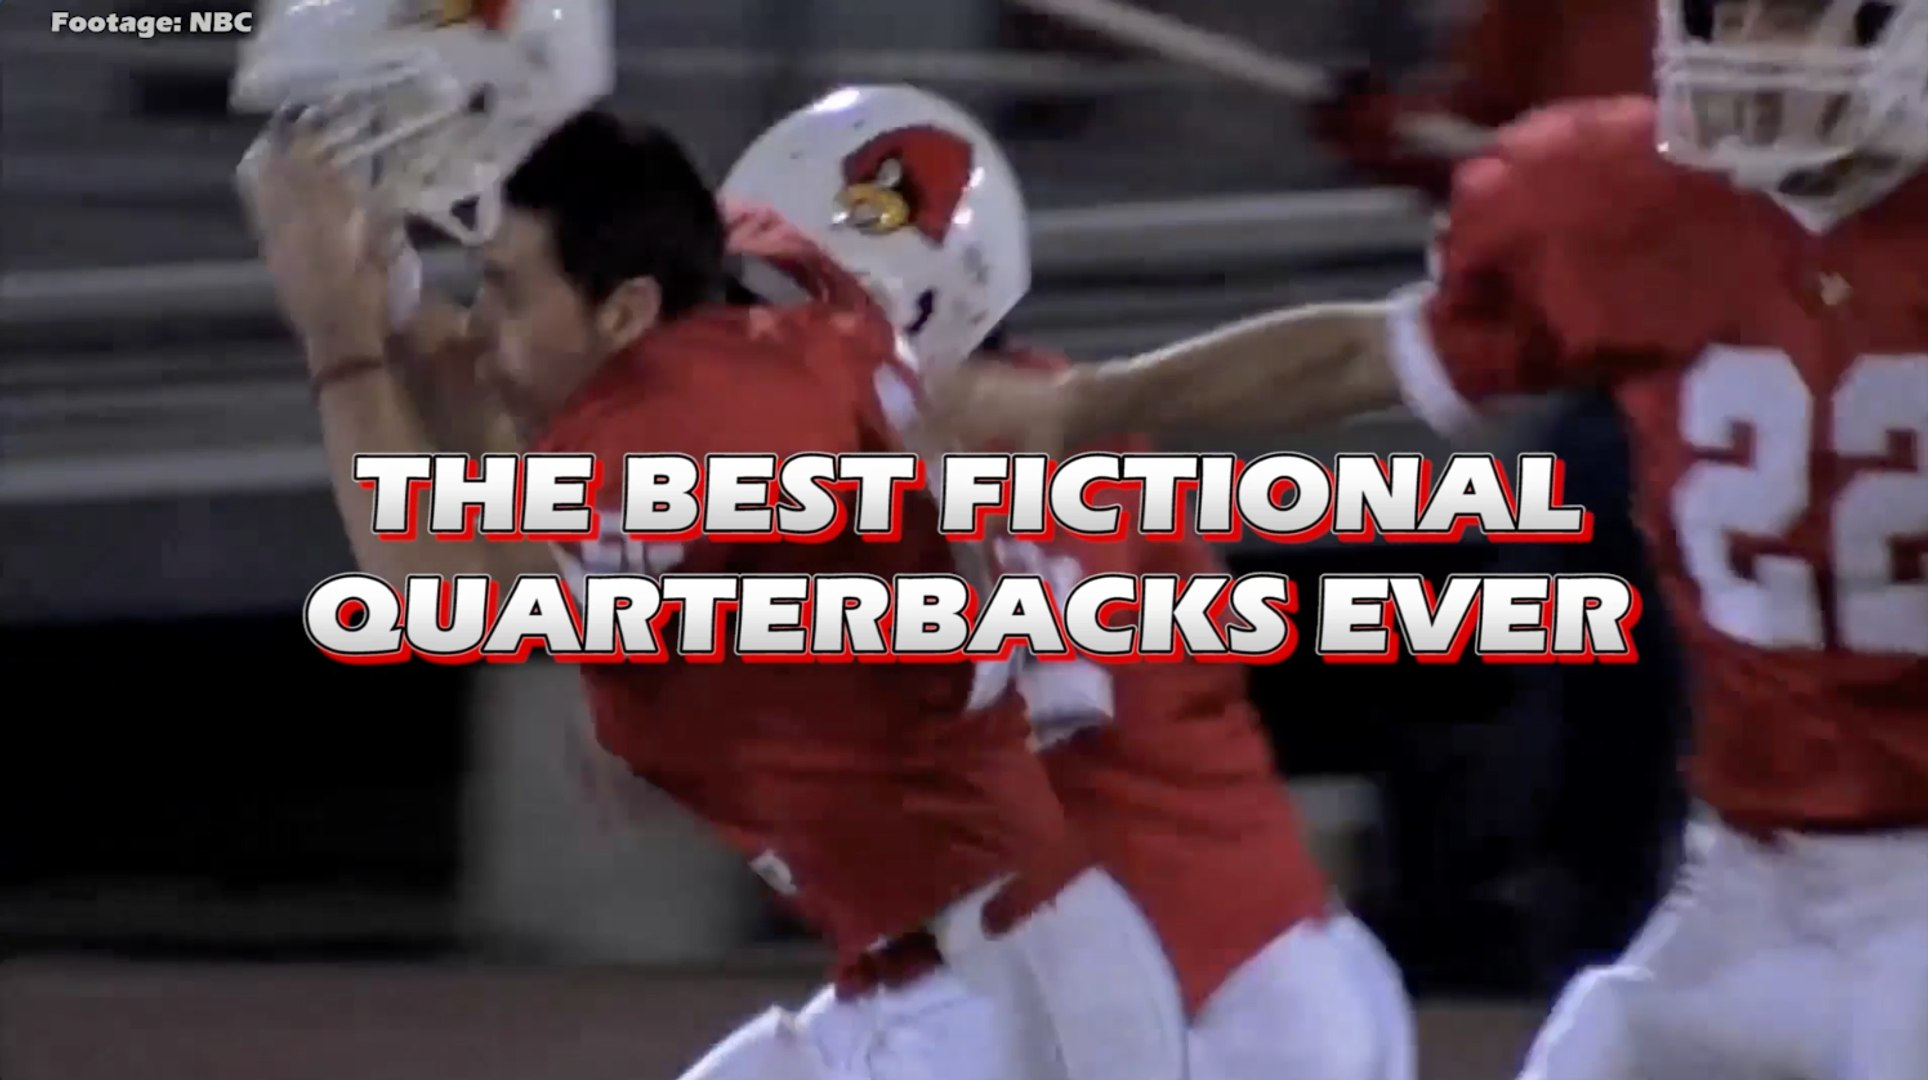 The Best Fictional Quarterbacks in TV and Movies